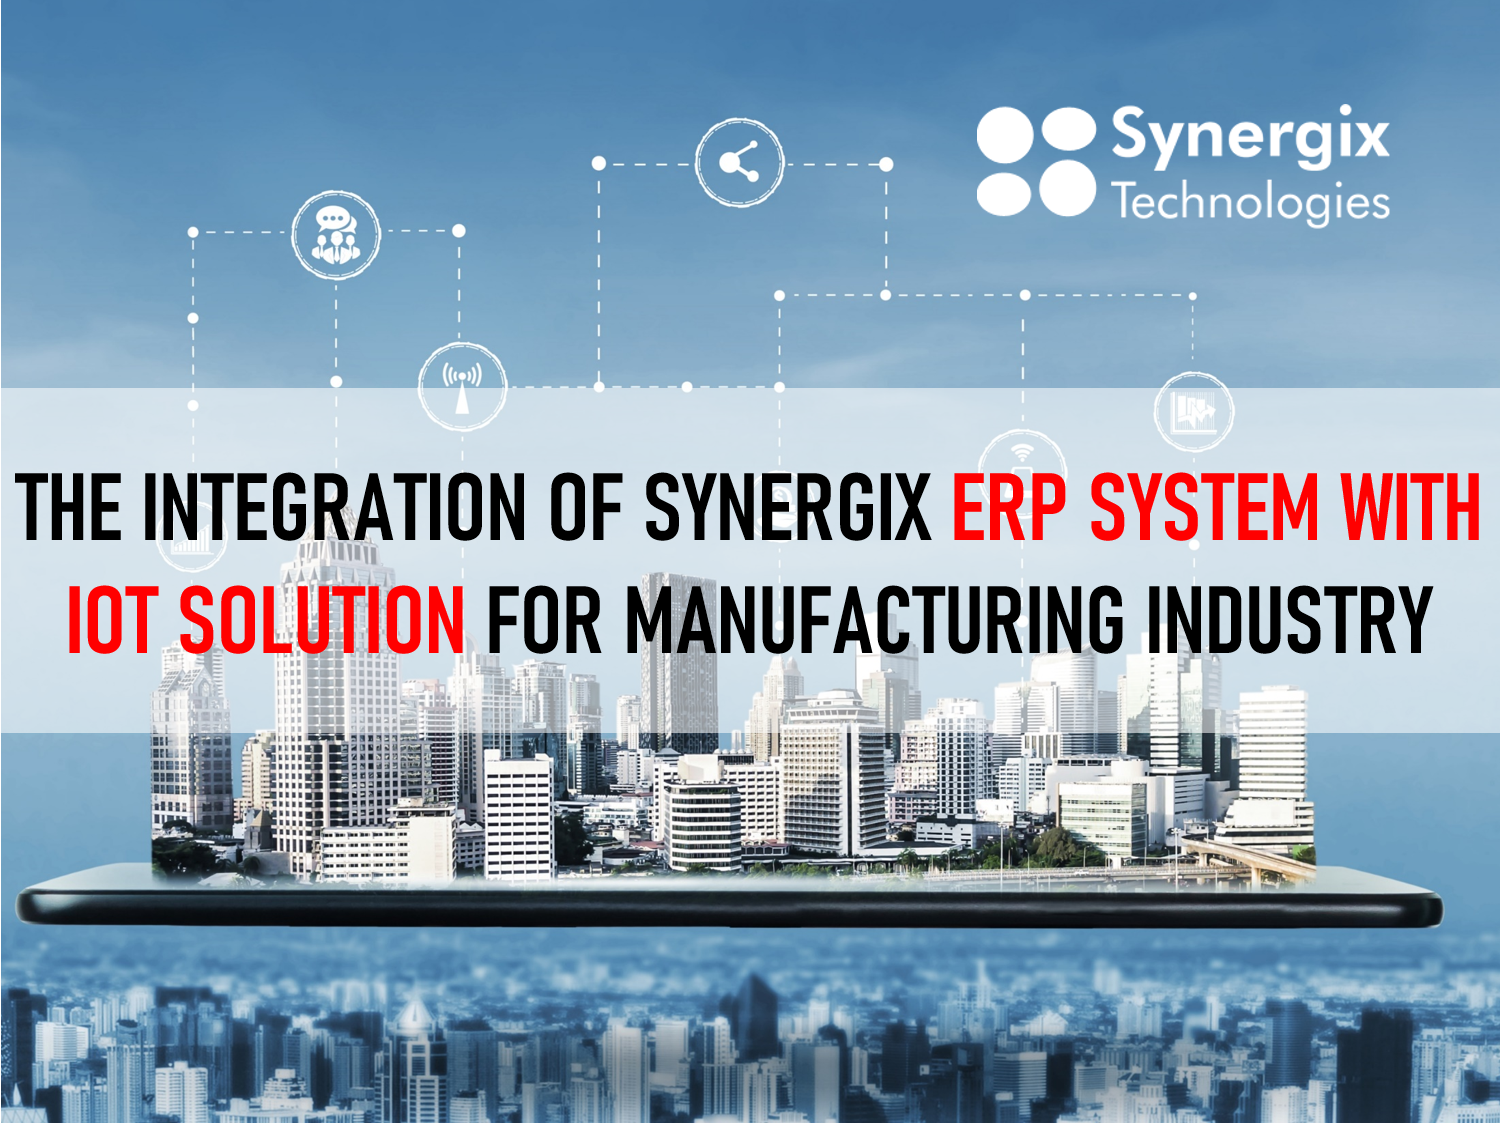 The integration of Synergix ERP system with IoT solution for manufacturing industry